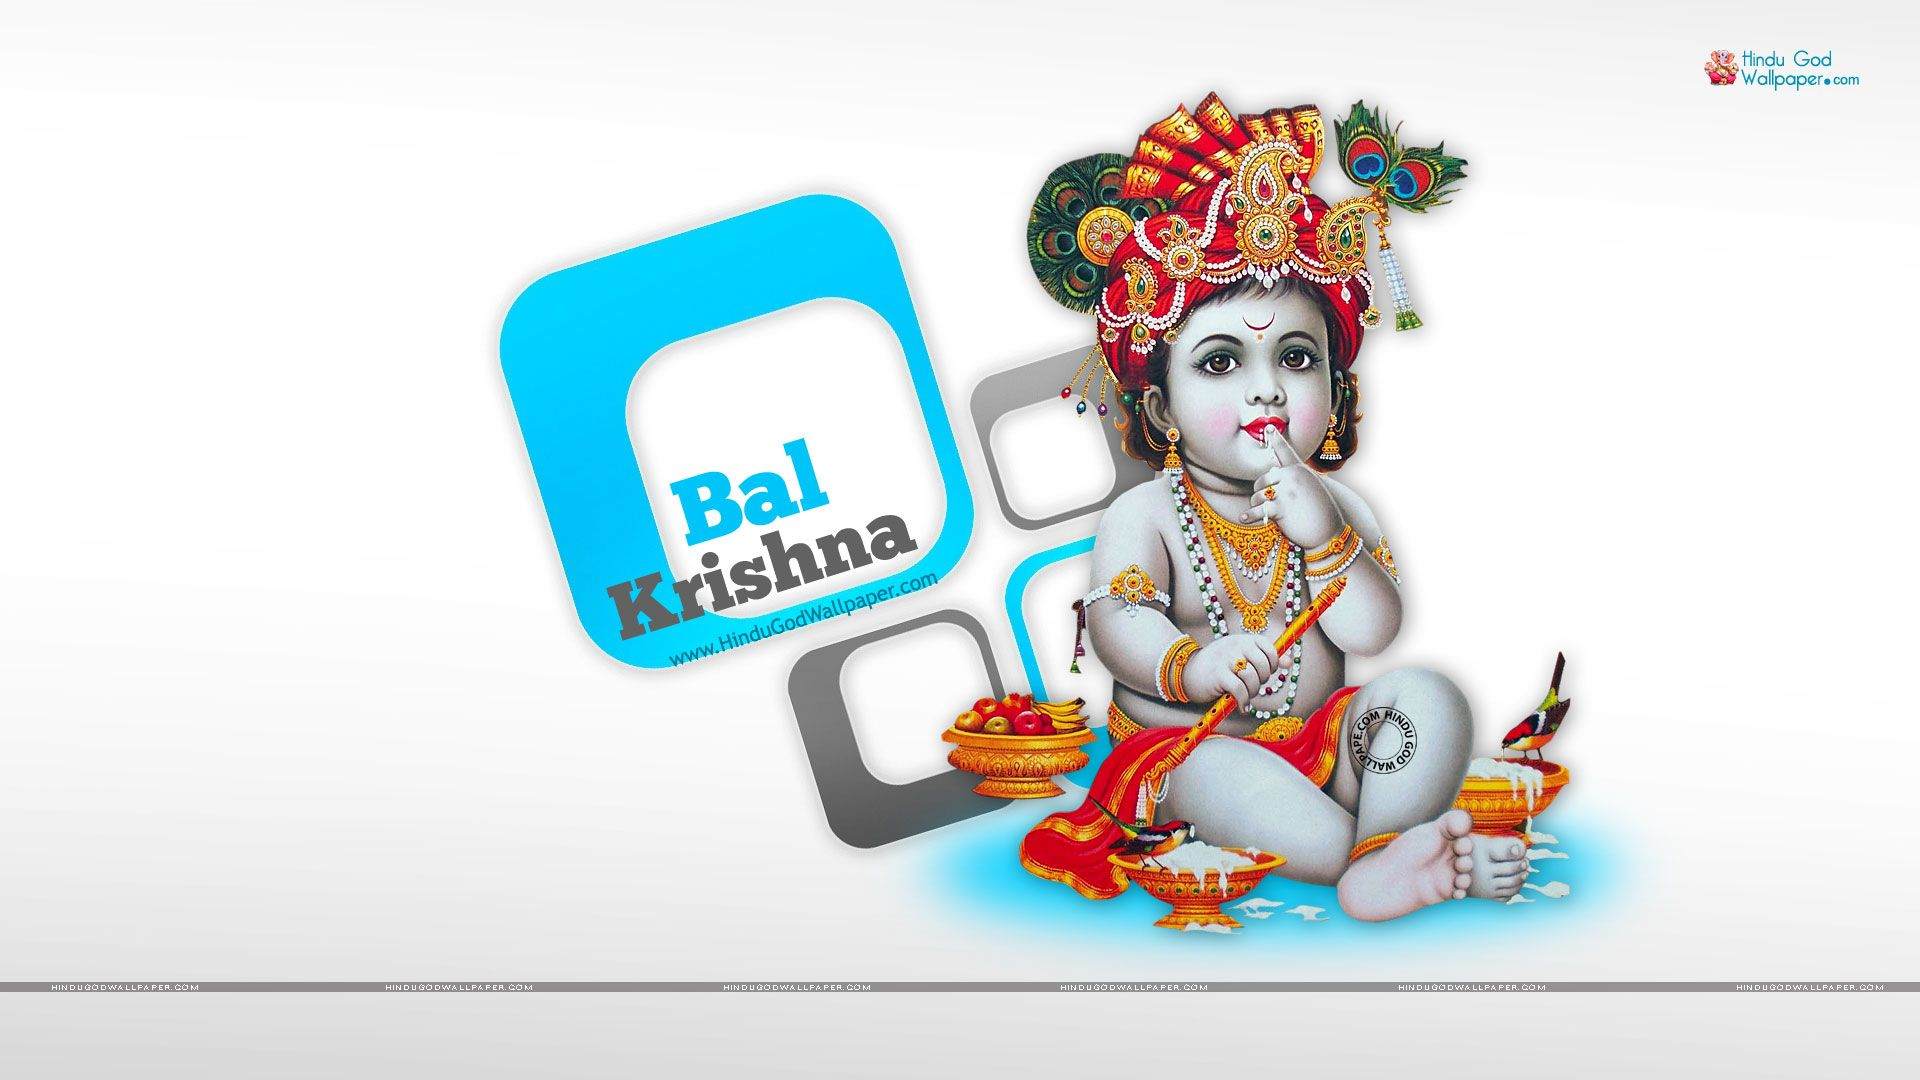 Bal Krishna Hd Wallpapers 1080p High Resolution Download Hd